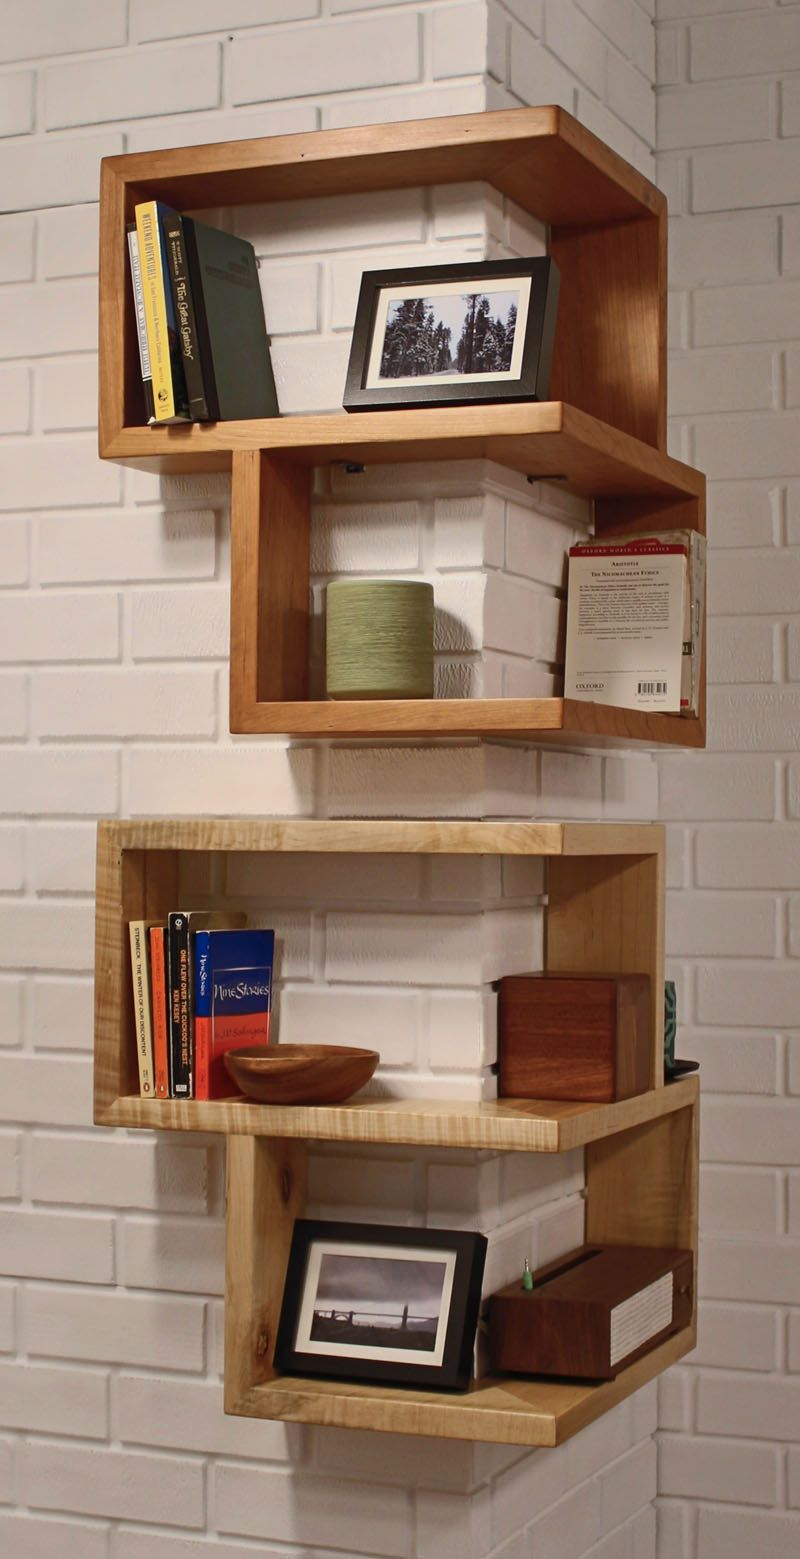 Beau A Corner Shelf That Adapts For Maximum Storage Space, Wrapping Around As  Either An Inside Or Outside Corner Shelf, And Can Be Wall Mounted Or Stand  Alone!